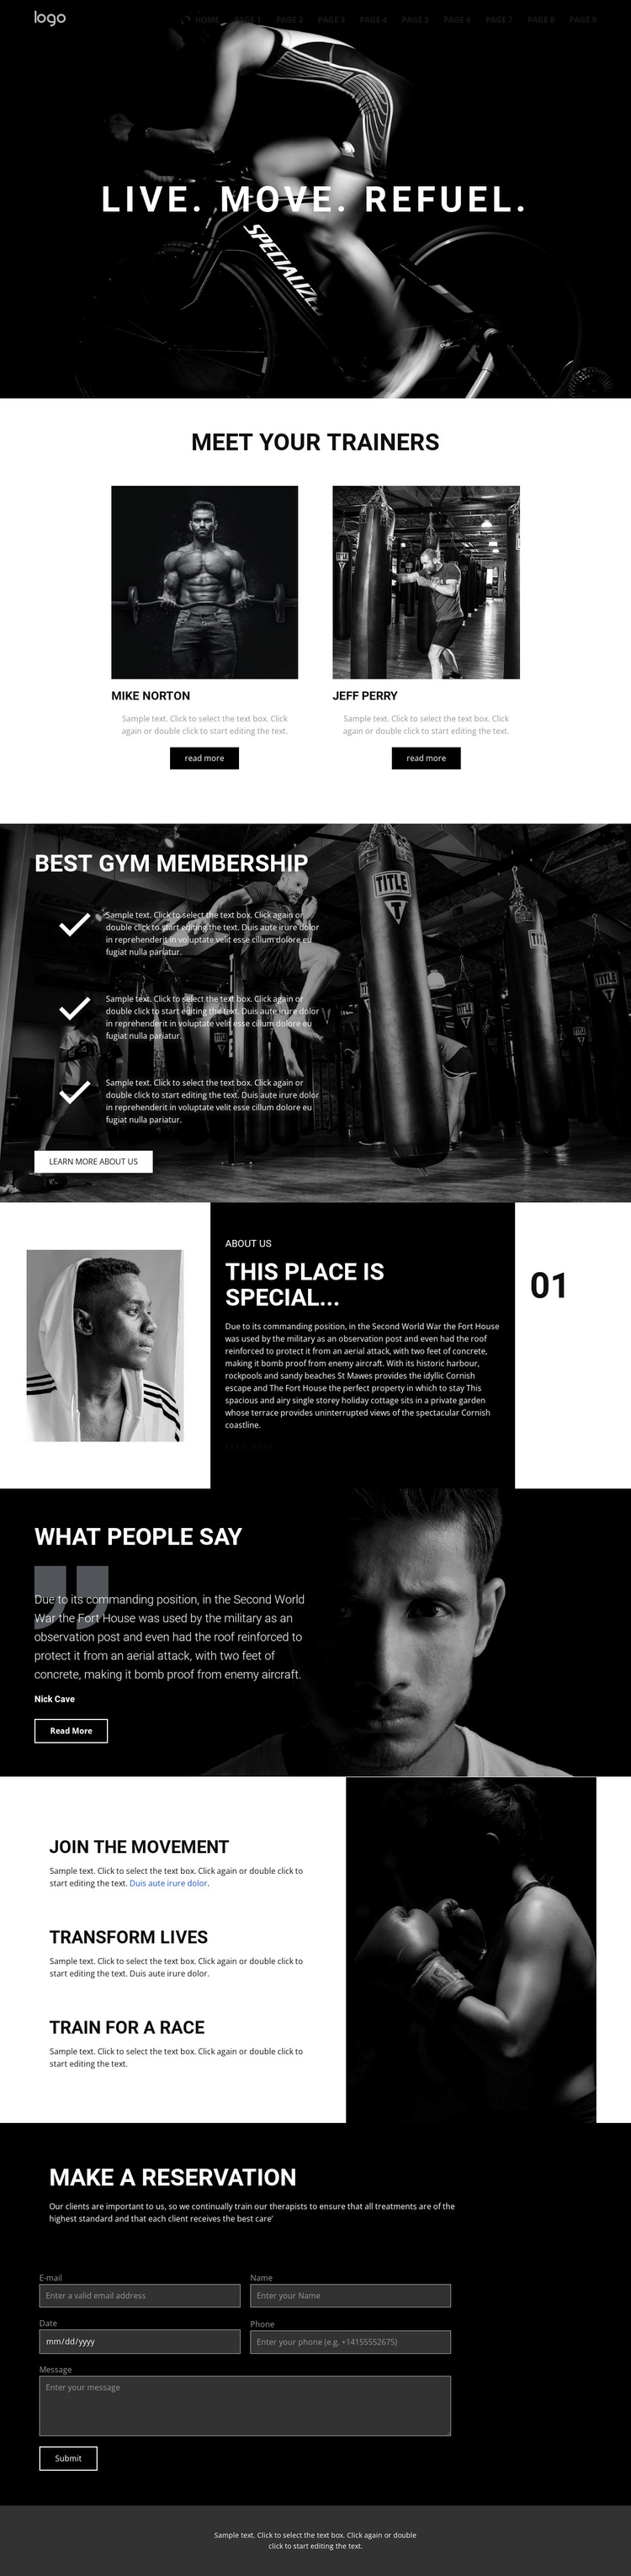 Refuel at power gym Template